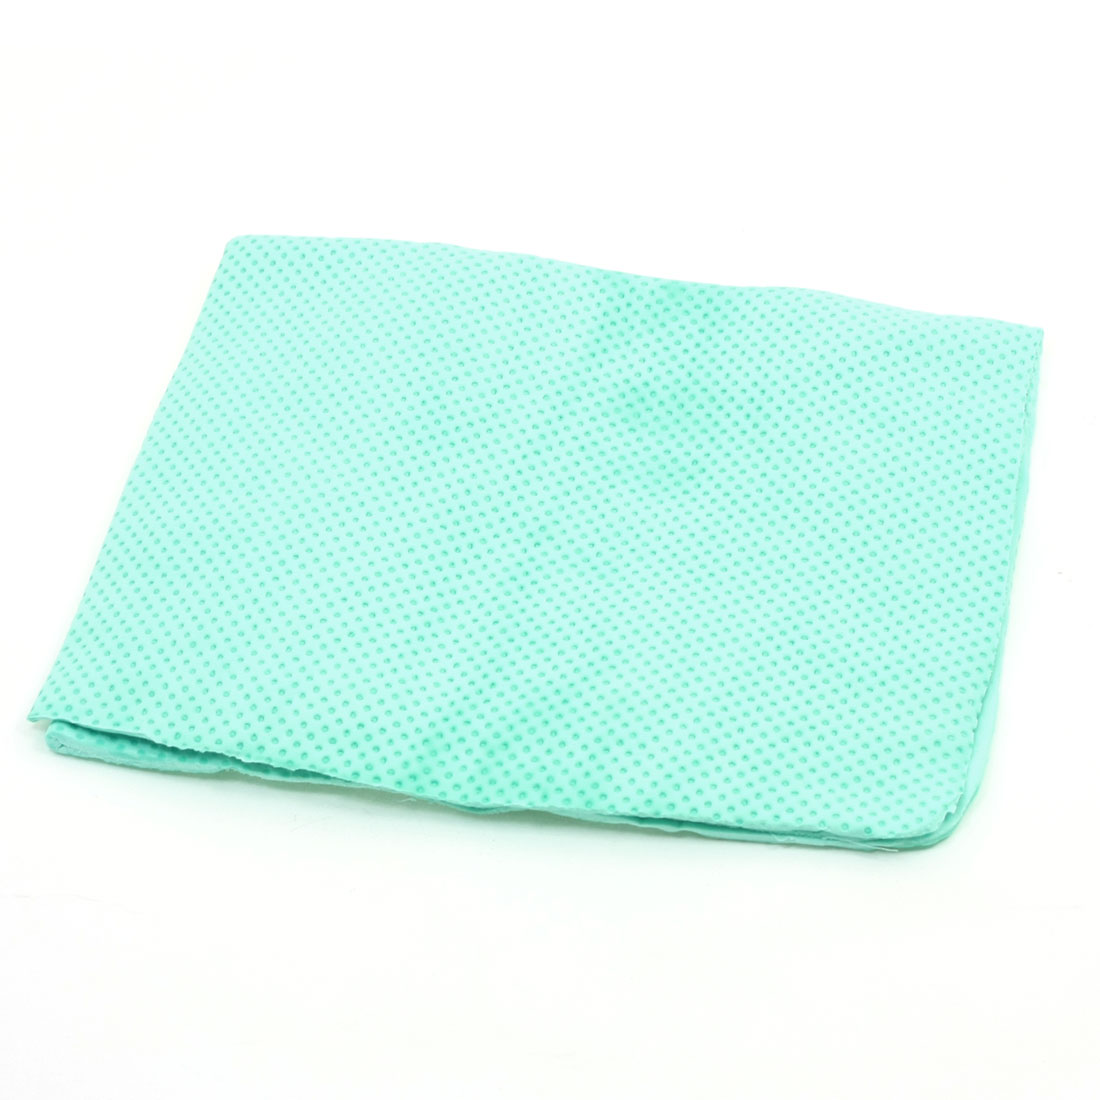 43cm x 32cm Car Clean Cham Synthetic Chamois Cleaning Towel Green